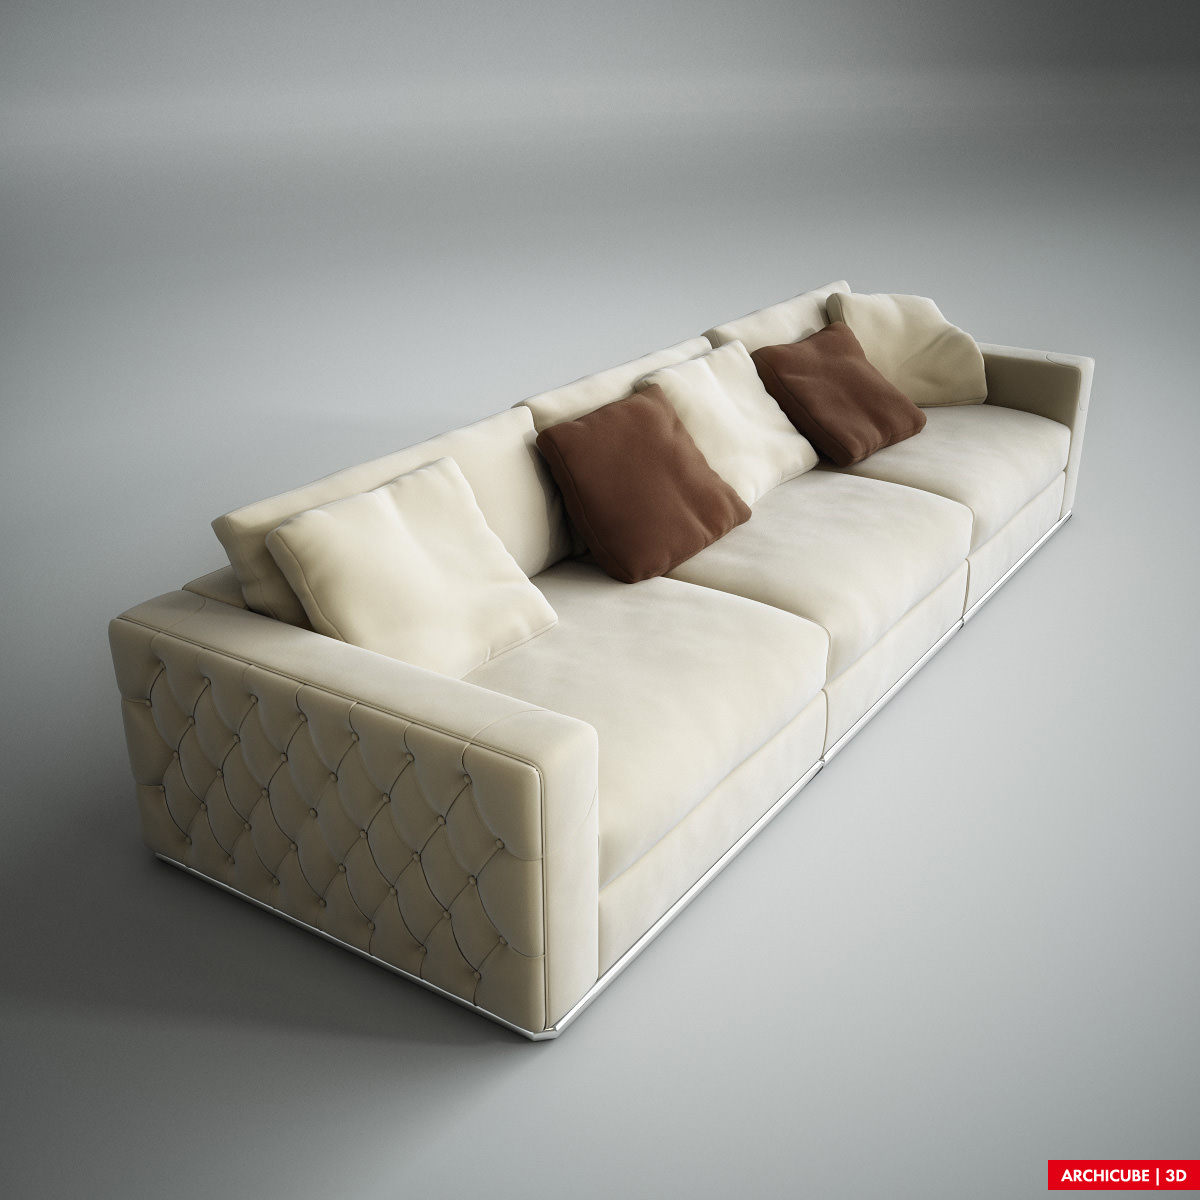 Fendi sofa 3d model max obj fbx for Sofa 3d model